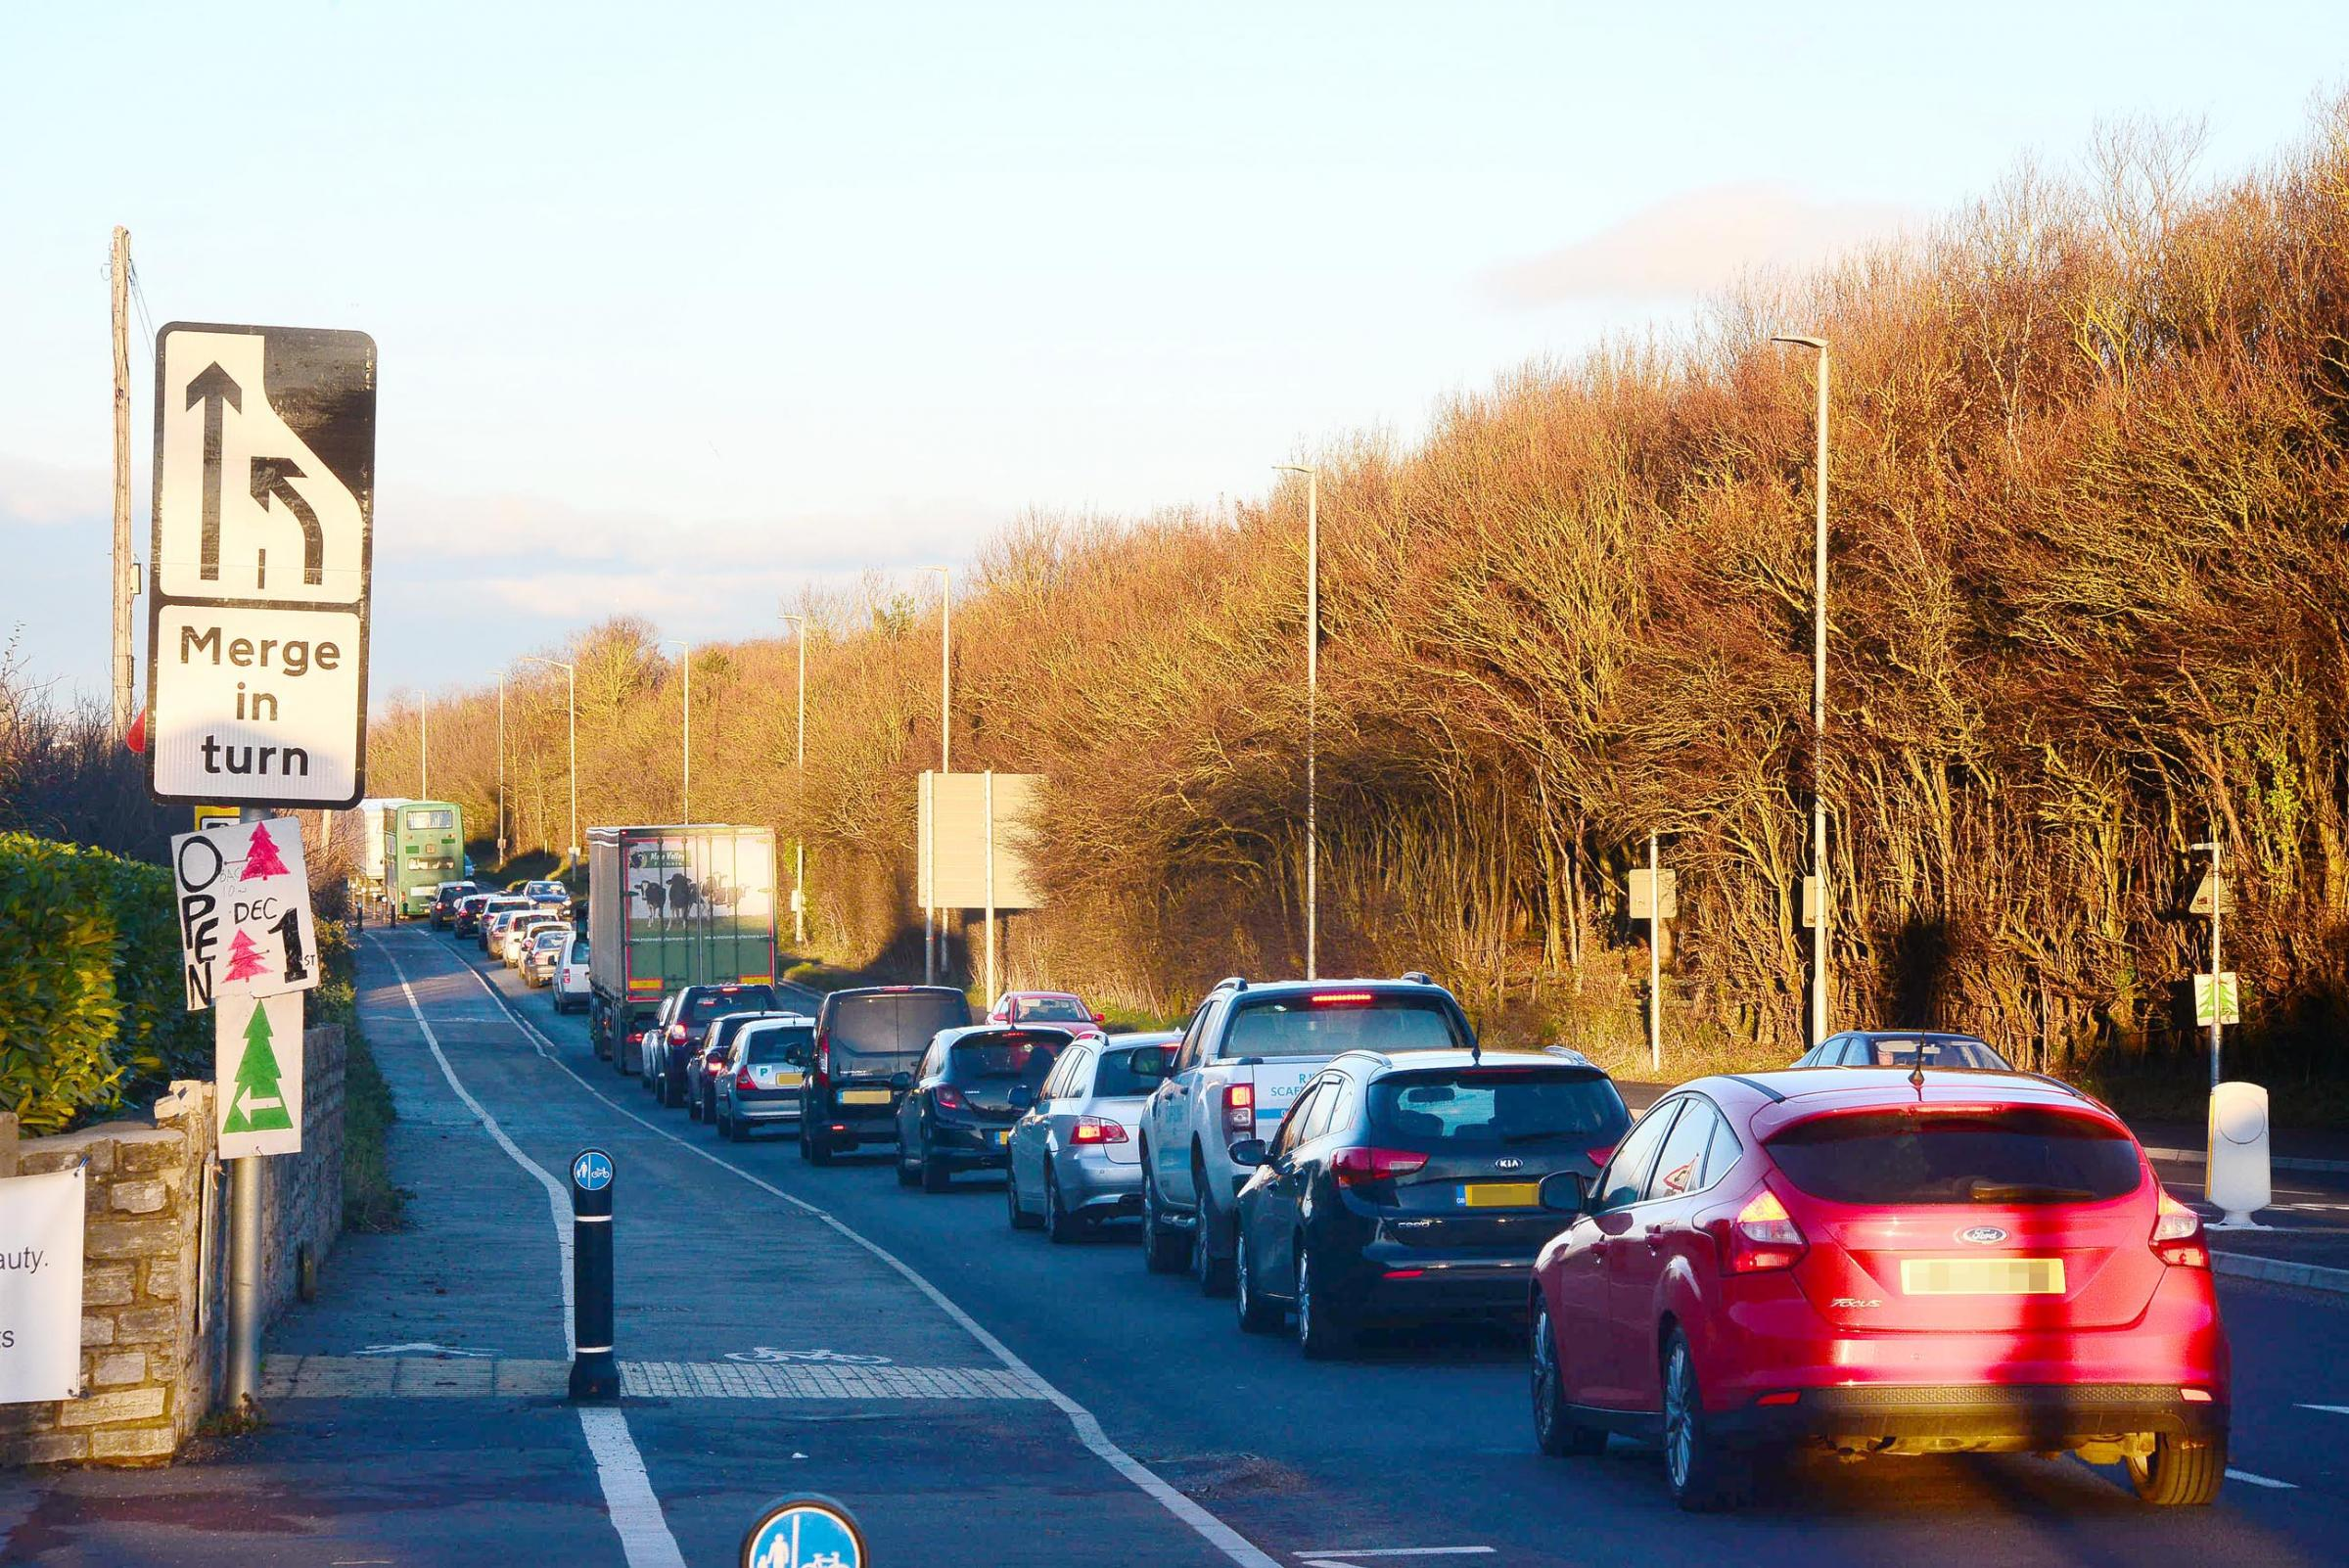 TRANSPORT PORTAL: The project is among solutions proposed to cut traffic congestion in Somerset